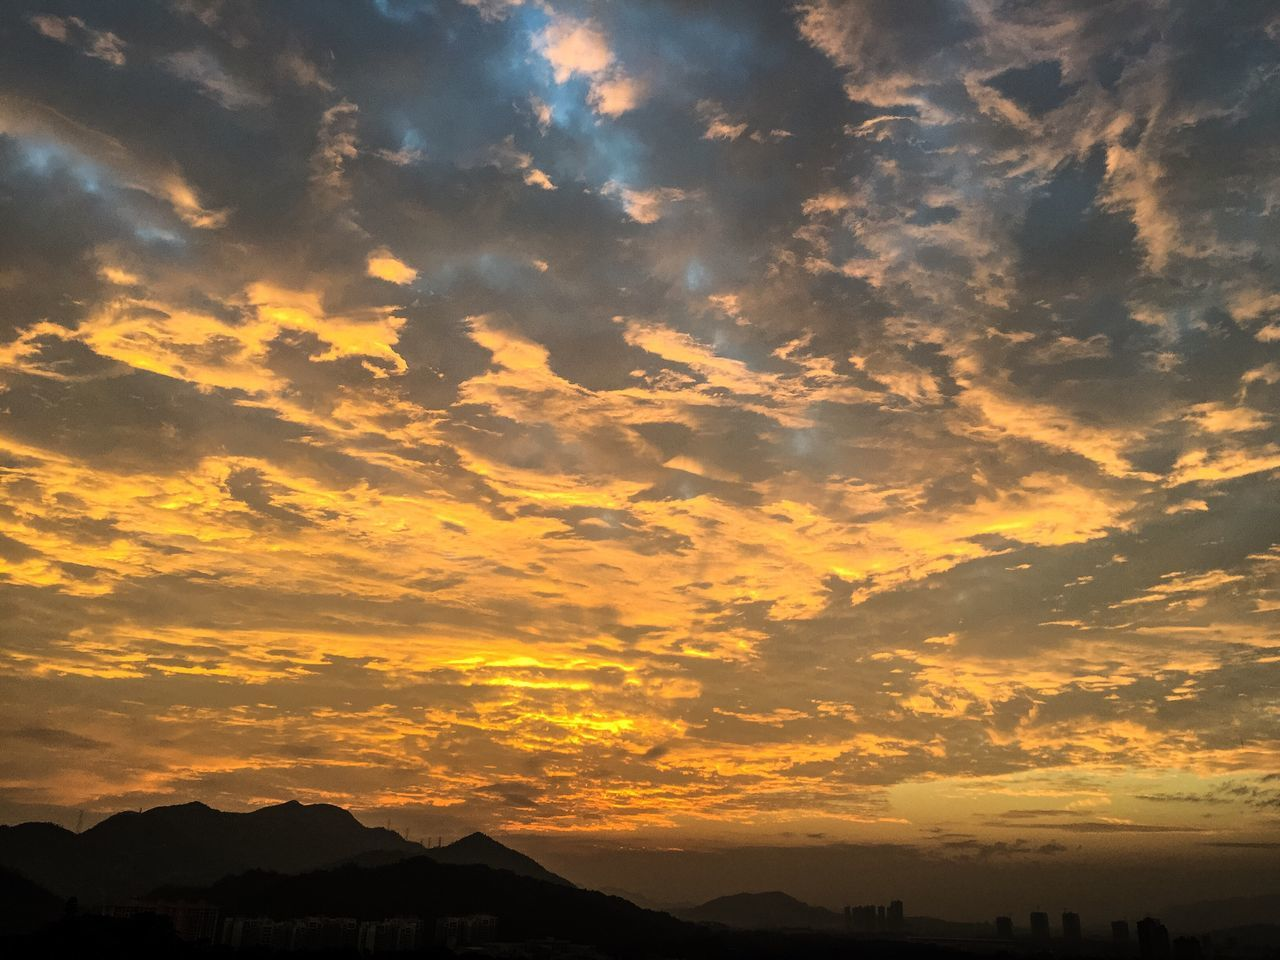 Sunset Sky Cloud - Sky Beauty In Nature Nature Scenics Dramatic Sky Yellow Zhuhai BEIJING北京CHINA中国BEAUTY China Mountain No People Outdoors Travel Destinations Tranquility Mountain Range Tranquil Scene Silhouette Astronomy